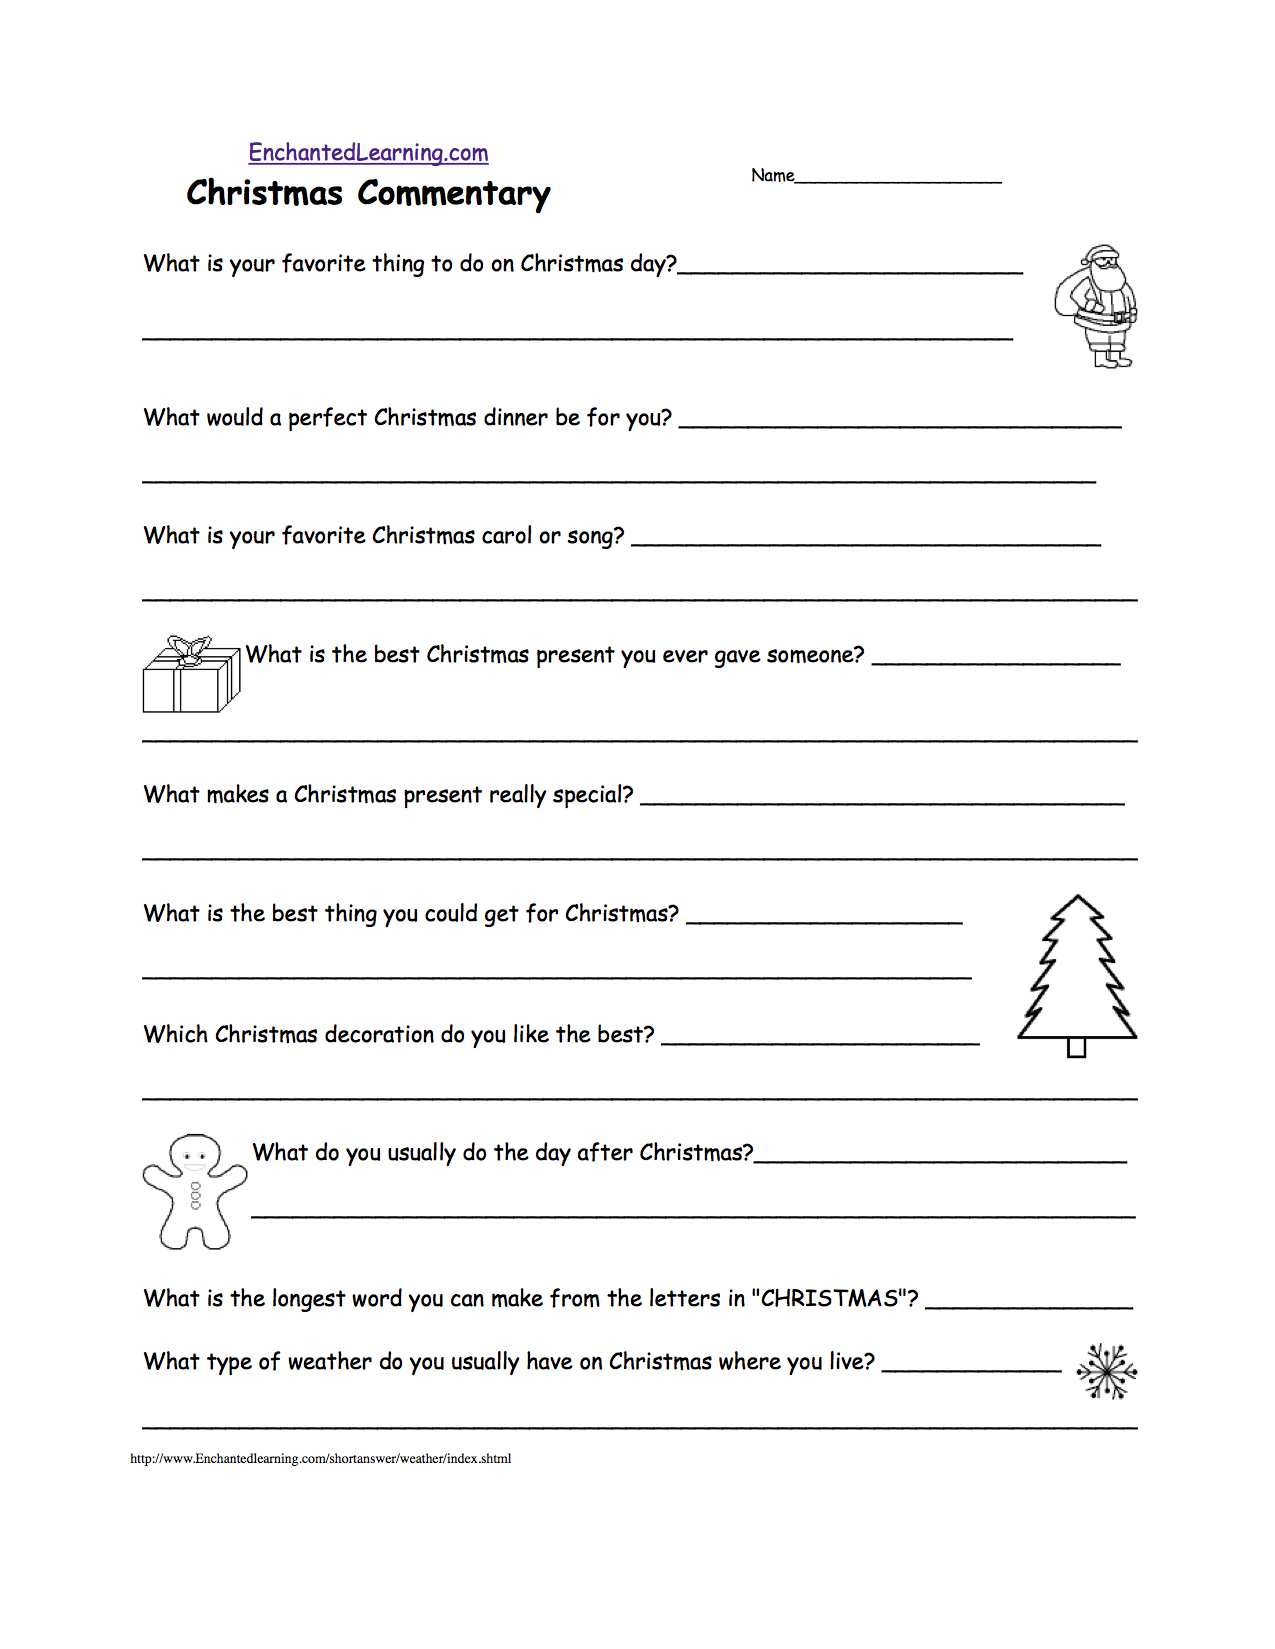 Short Answer Quizzes - Printable - Enchantedlearning